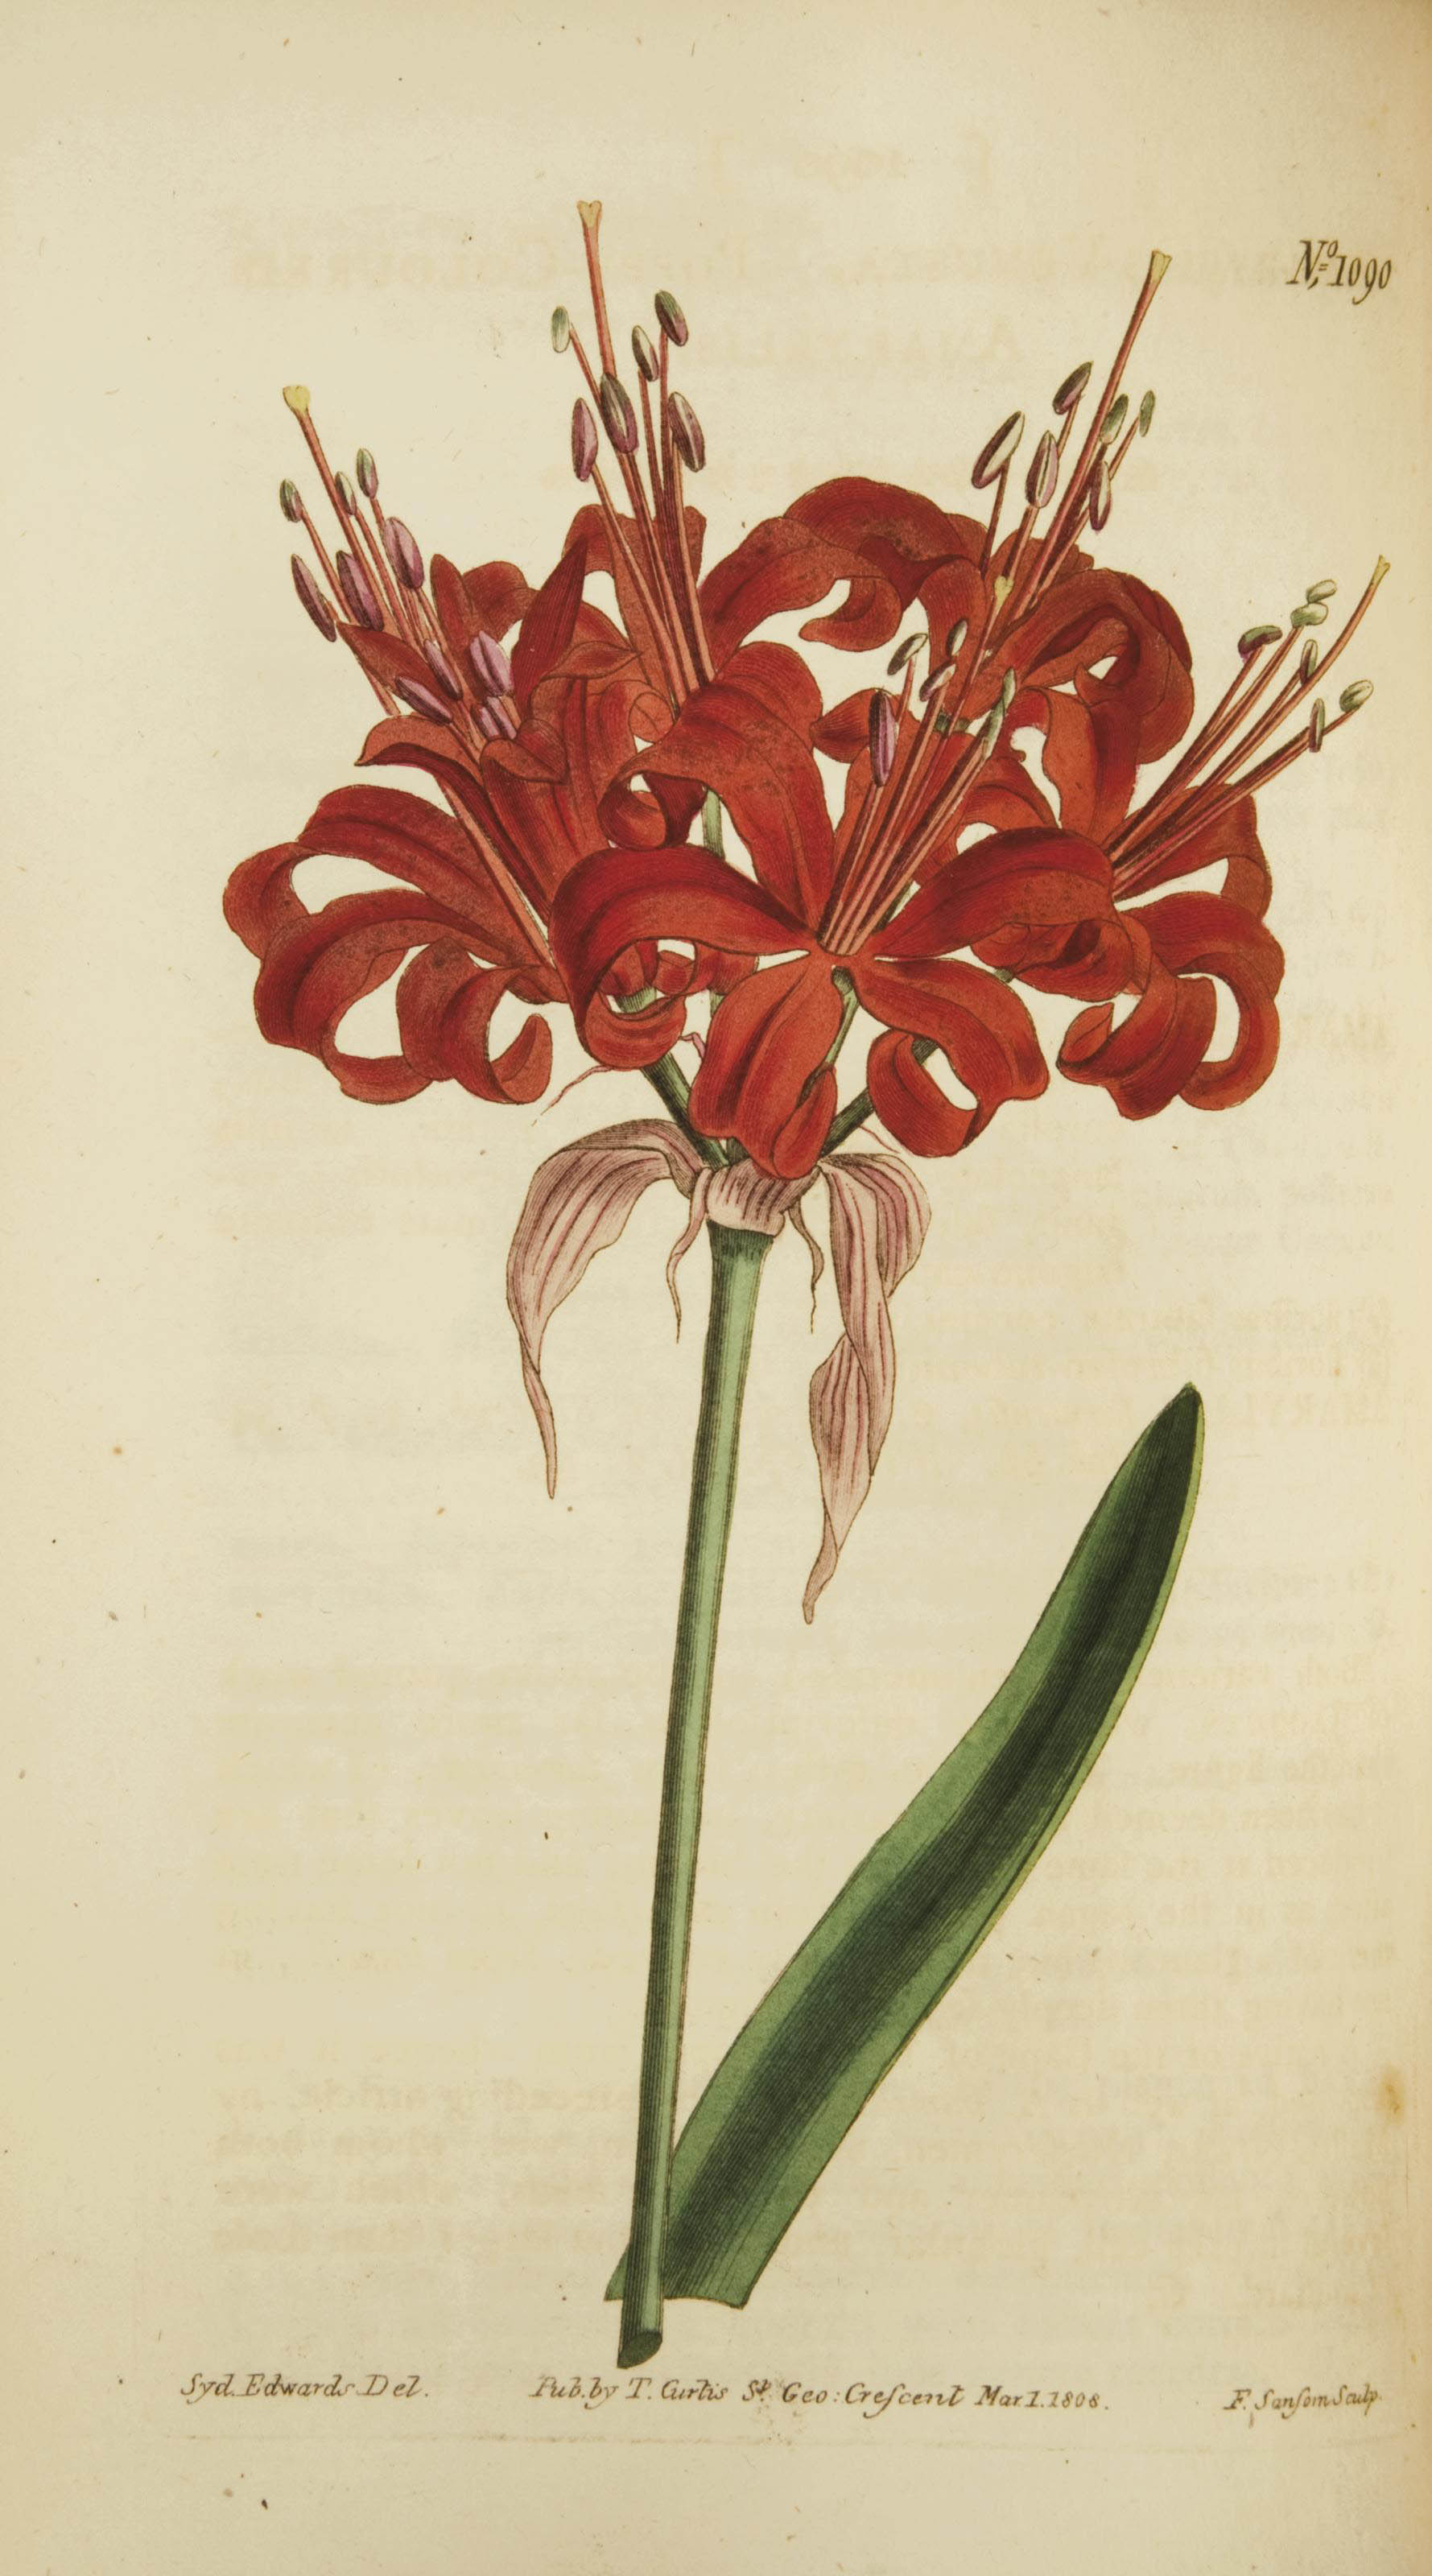 CURTIS, William (1746-1799). The Botanical Magazine; or, Flower-Garden Displayed. Londres: Stephen Couchman, 1793-1814.